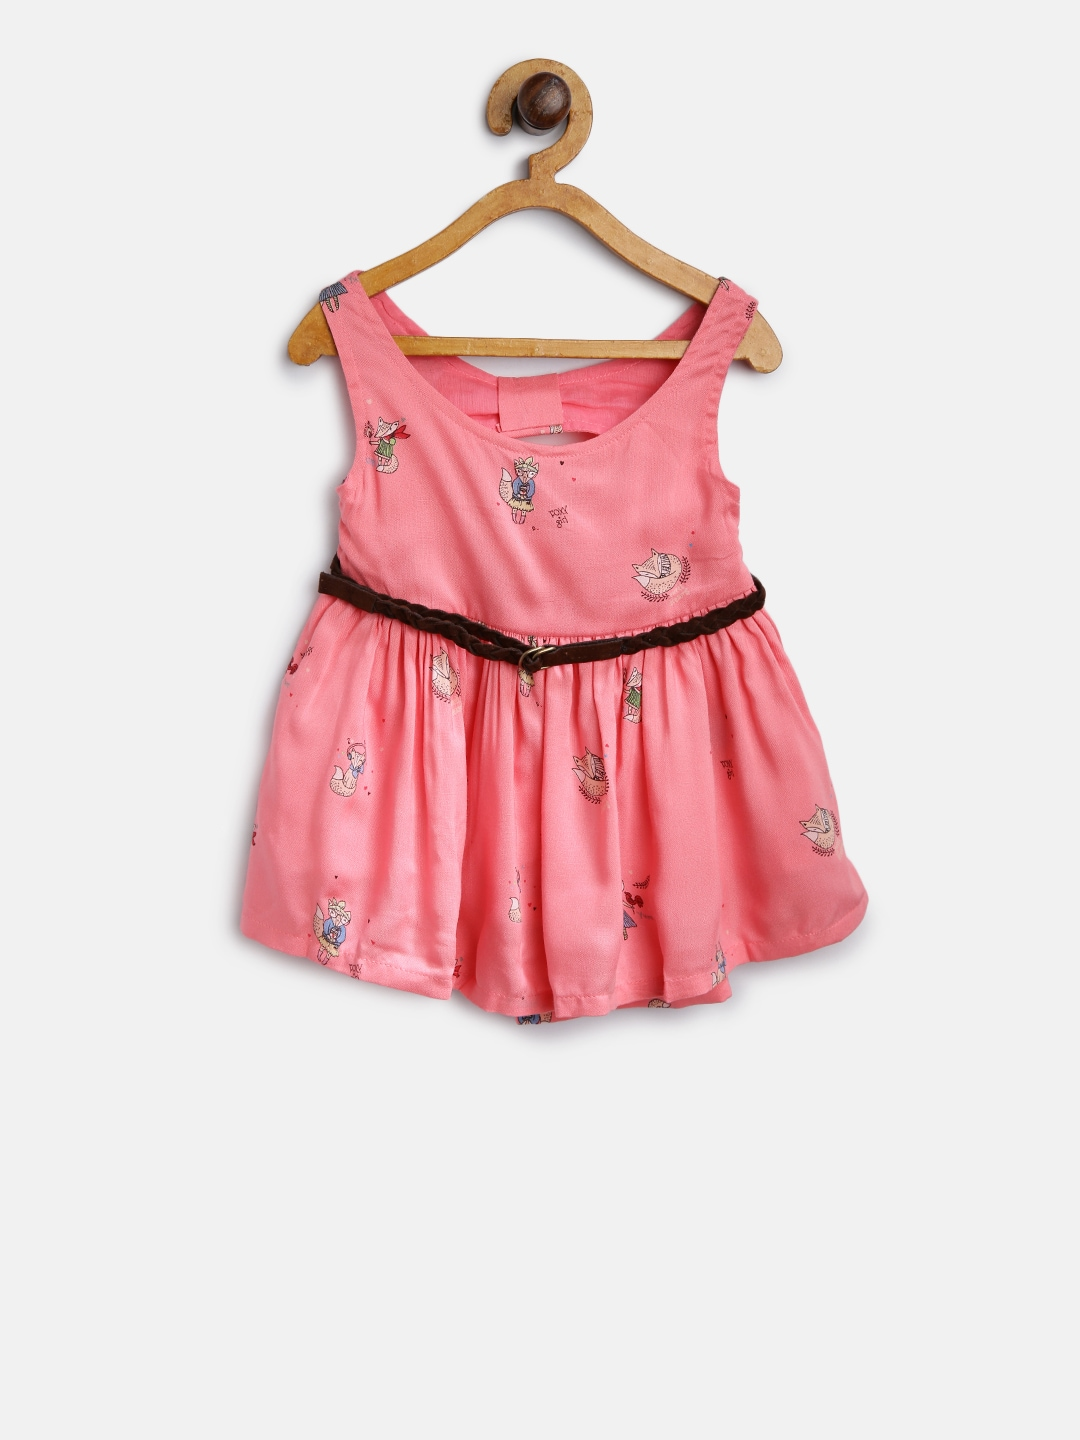 eb54df64f6 Girls Dresses - Buy Frocks   Gowns for Girls Online